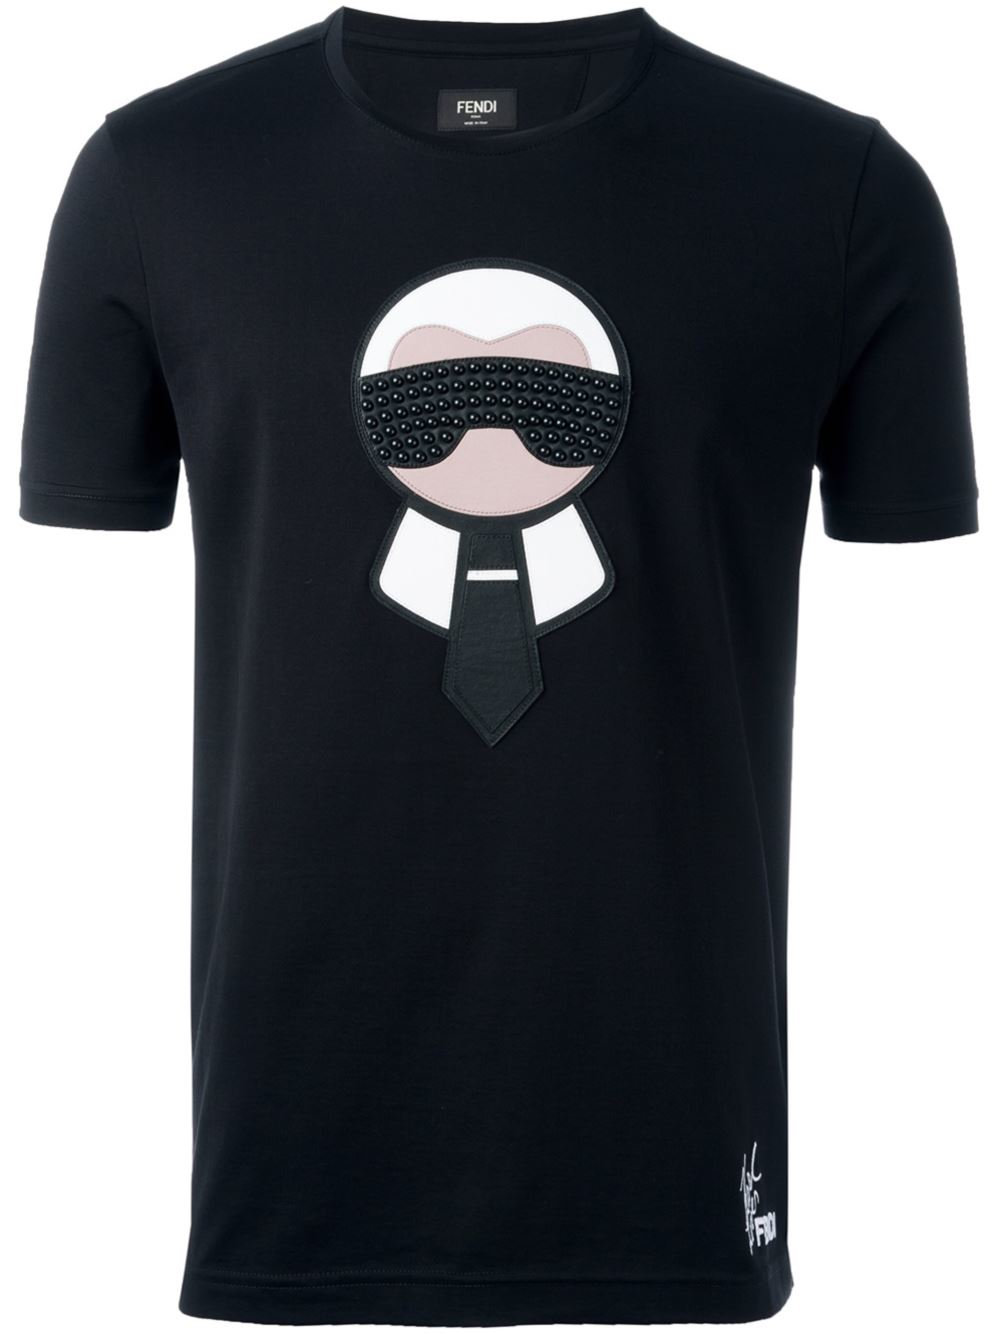 Fendi Karlito T Shirt In Black For Men Lyst